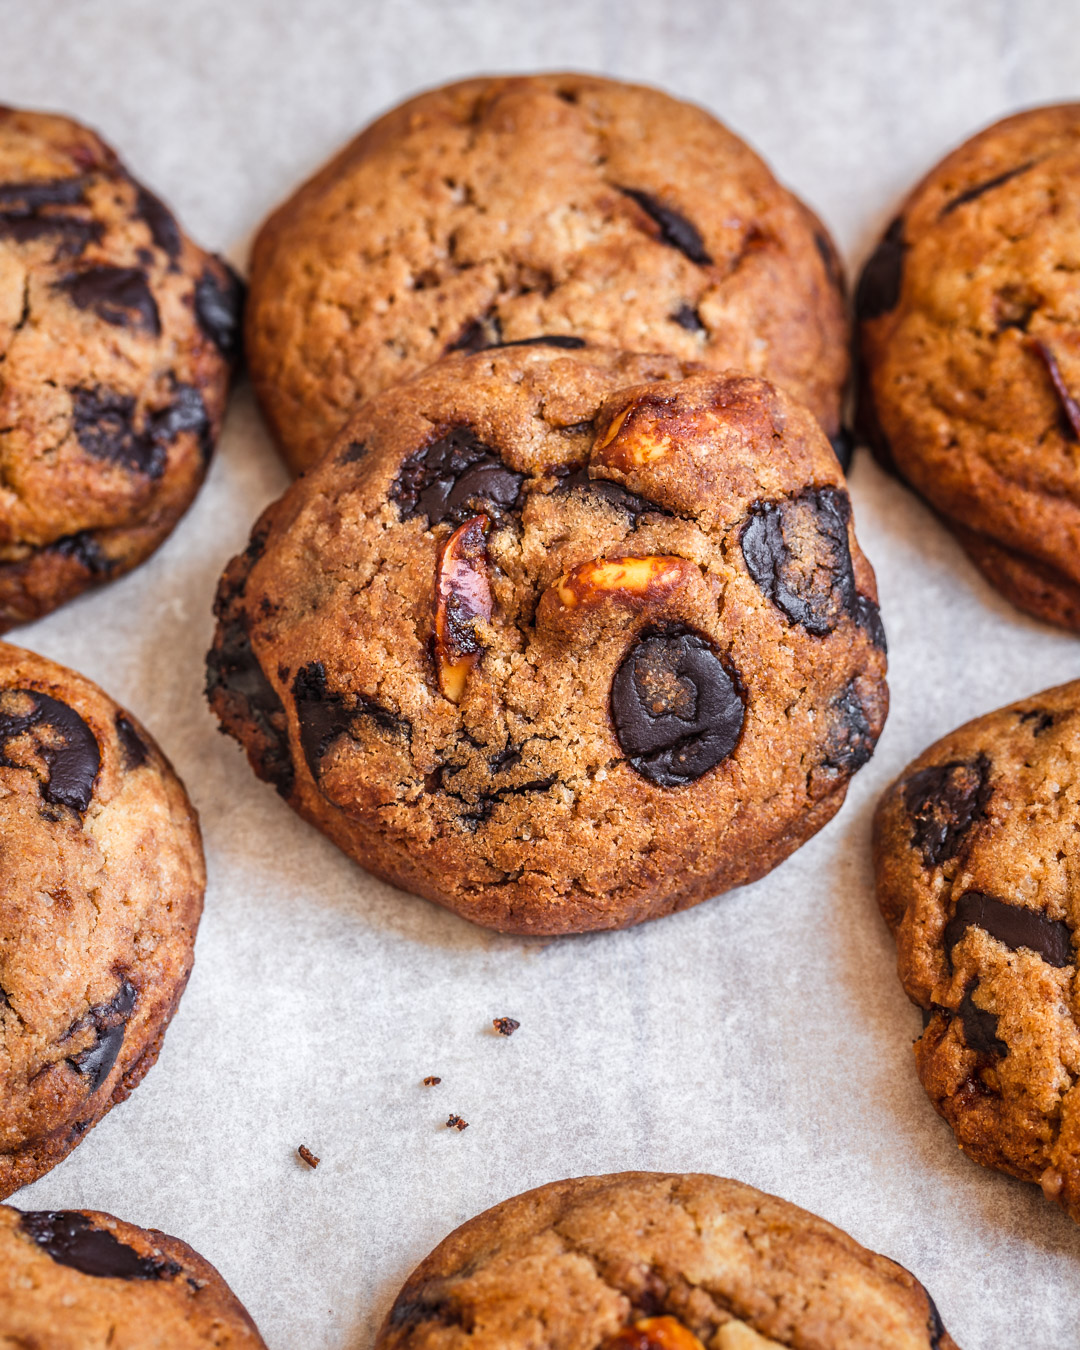 Caramelized Peanuts & Chocolate Chips Cookies